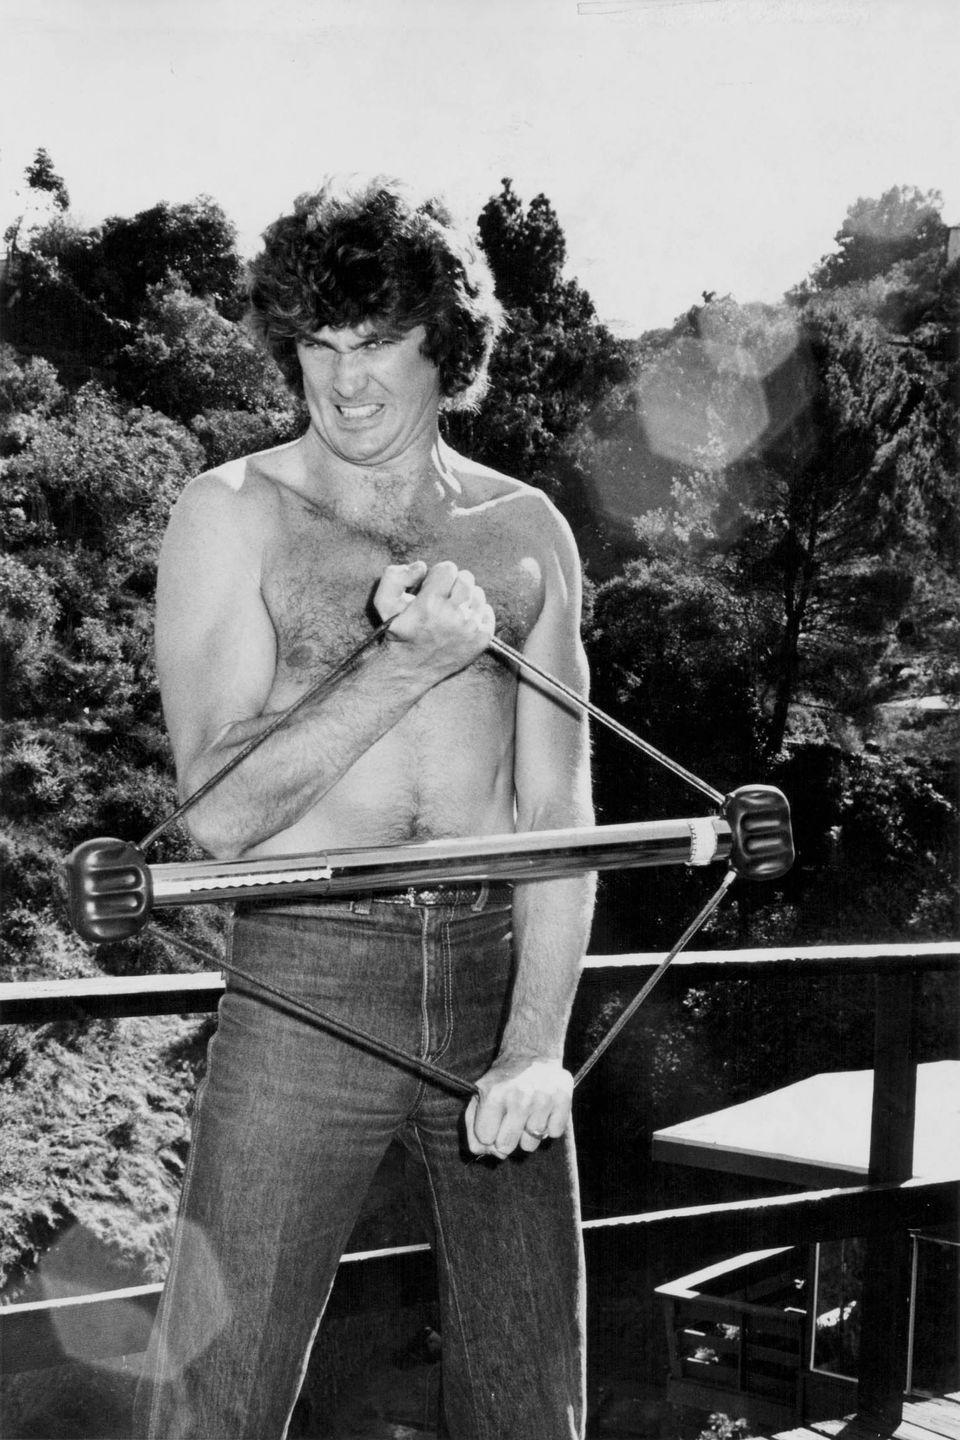 <p>David Hasselhoff jokingly practicing body building exercises, at his home in the Hollywood Hills in 1979.</p>